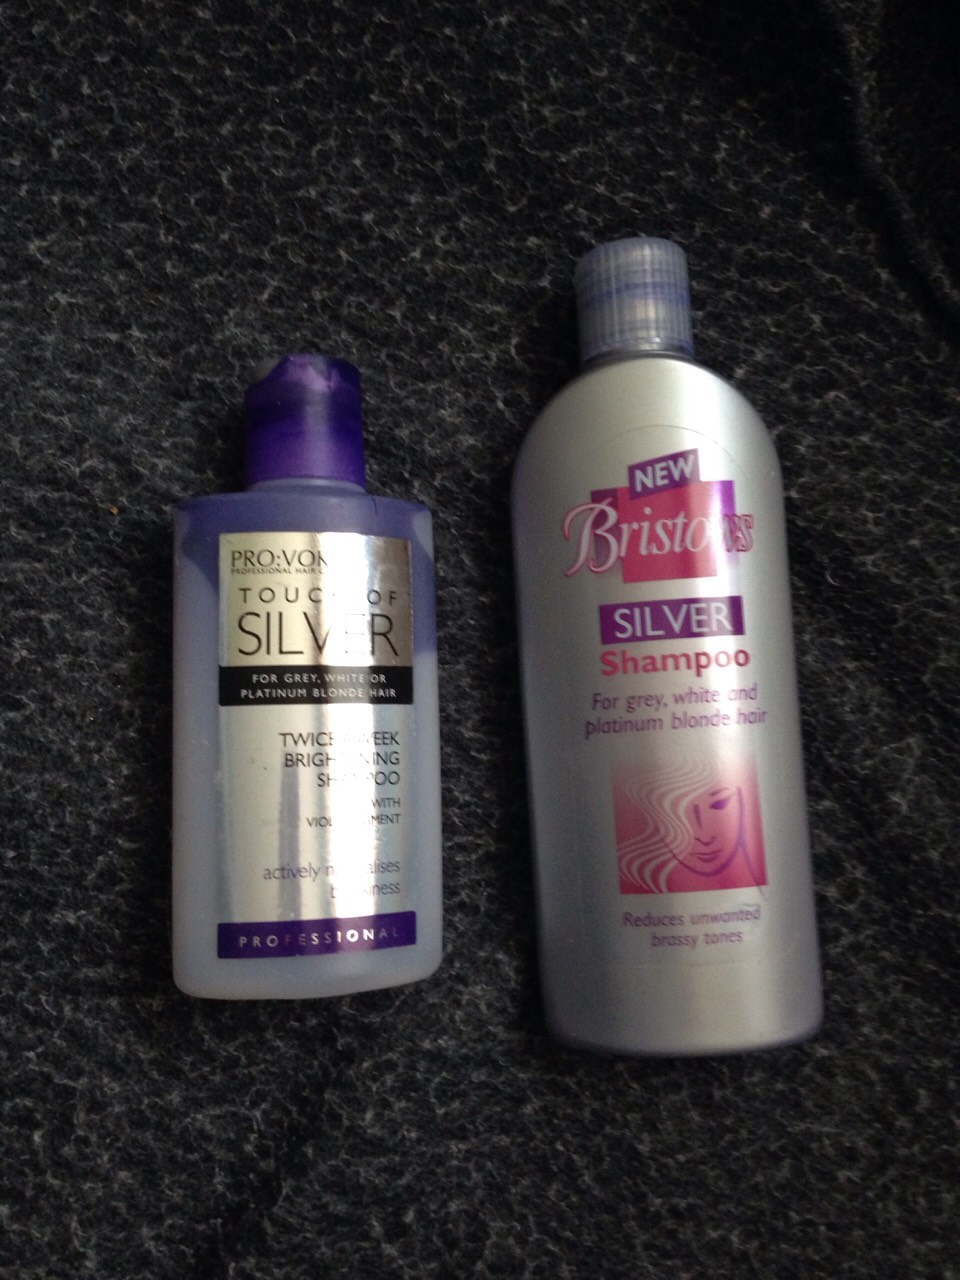 These are the shampoos I used overnight